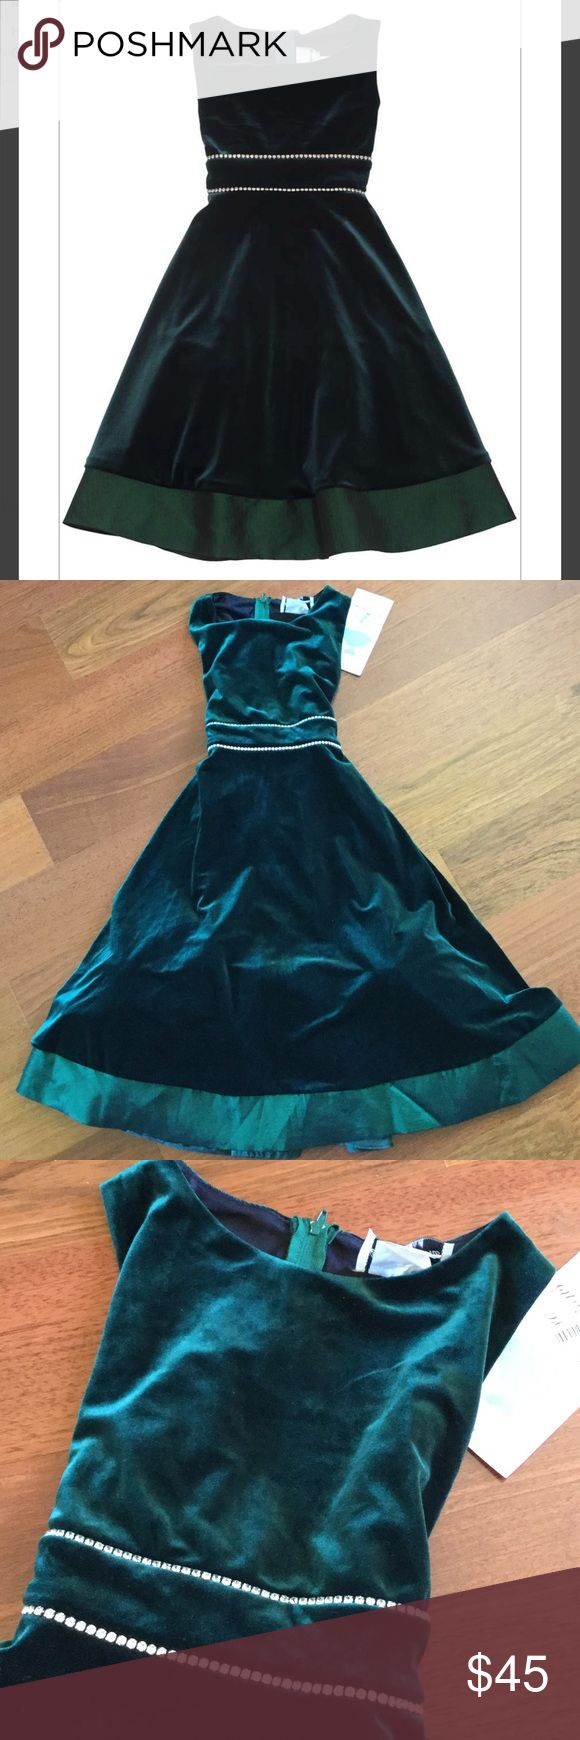 Rare Editions Hunter Green Dress with Rhinestones This beautiful dress is new and never worn. Gorgeous for formal events and holidays.  Built in crinoline for fullness. Rare Editions Dresses Formal